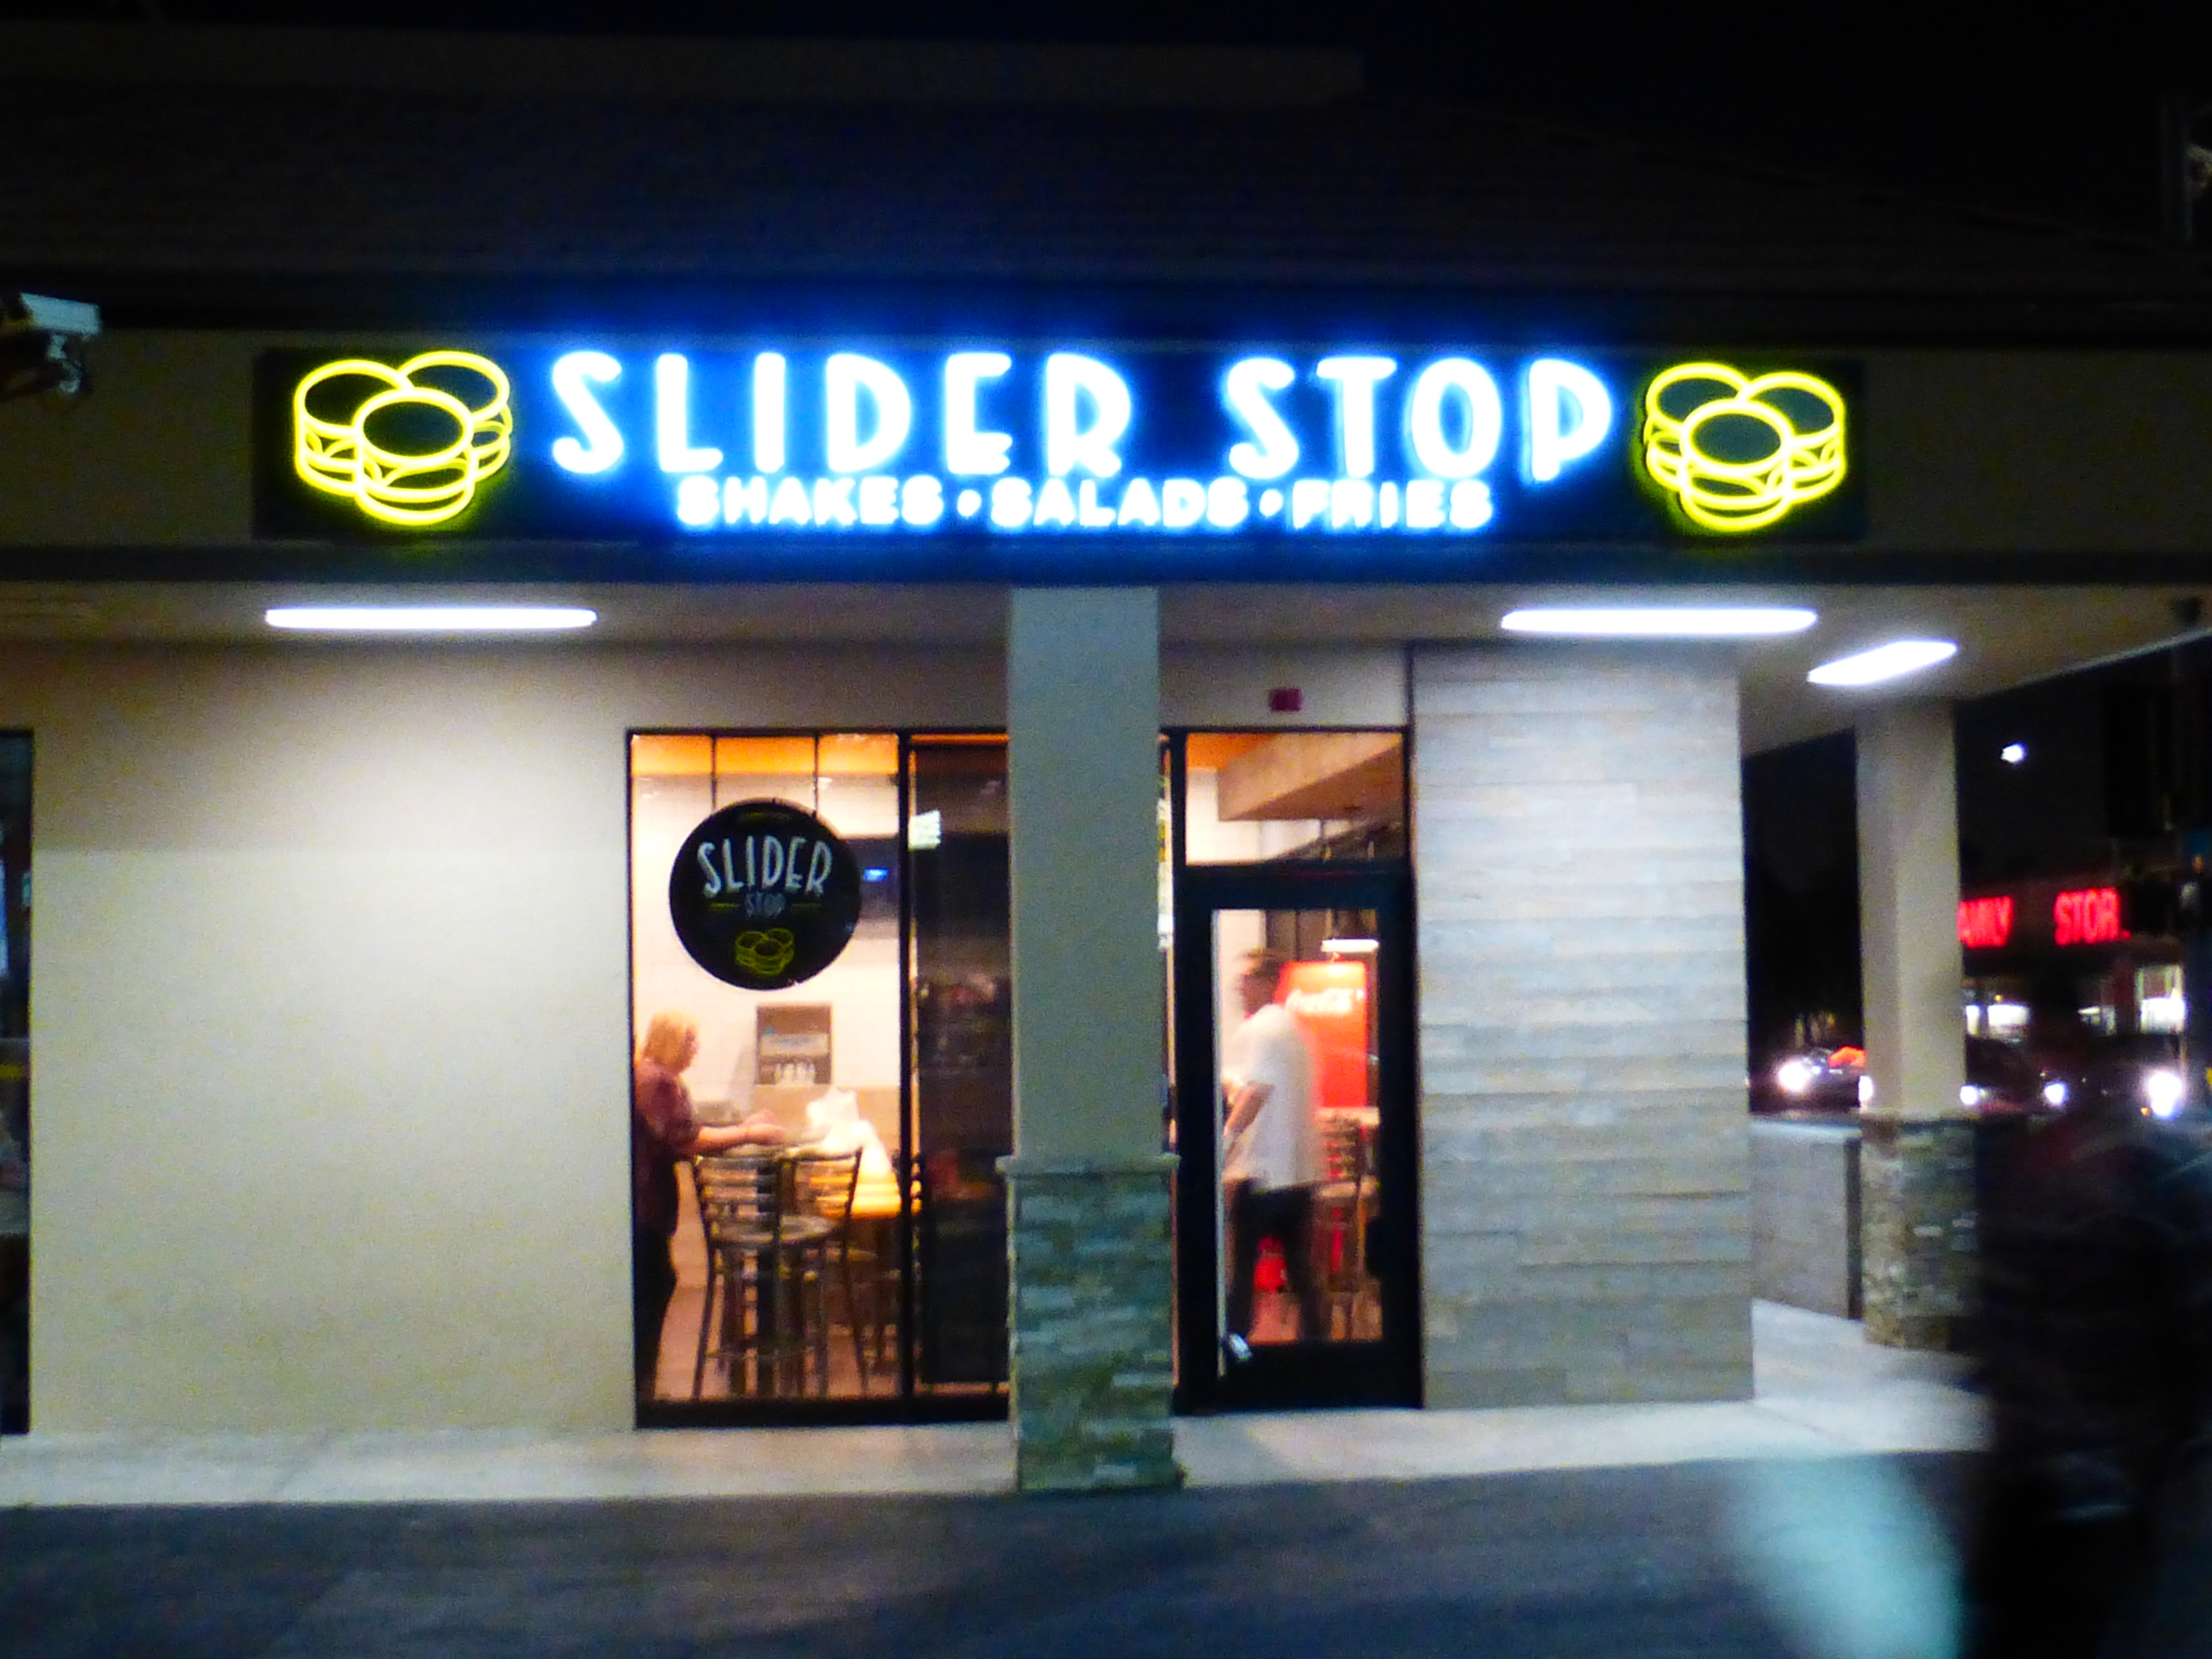 Slider Stop, a new restaurant soon on Artesia Boulevard in Redondo Beach, brings chef-driven creativity to sliders. The restaurant is the project of South Bay natives Ryan, Jason, and Brandon Rezaie. Photo by Richard Foss